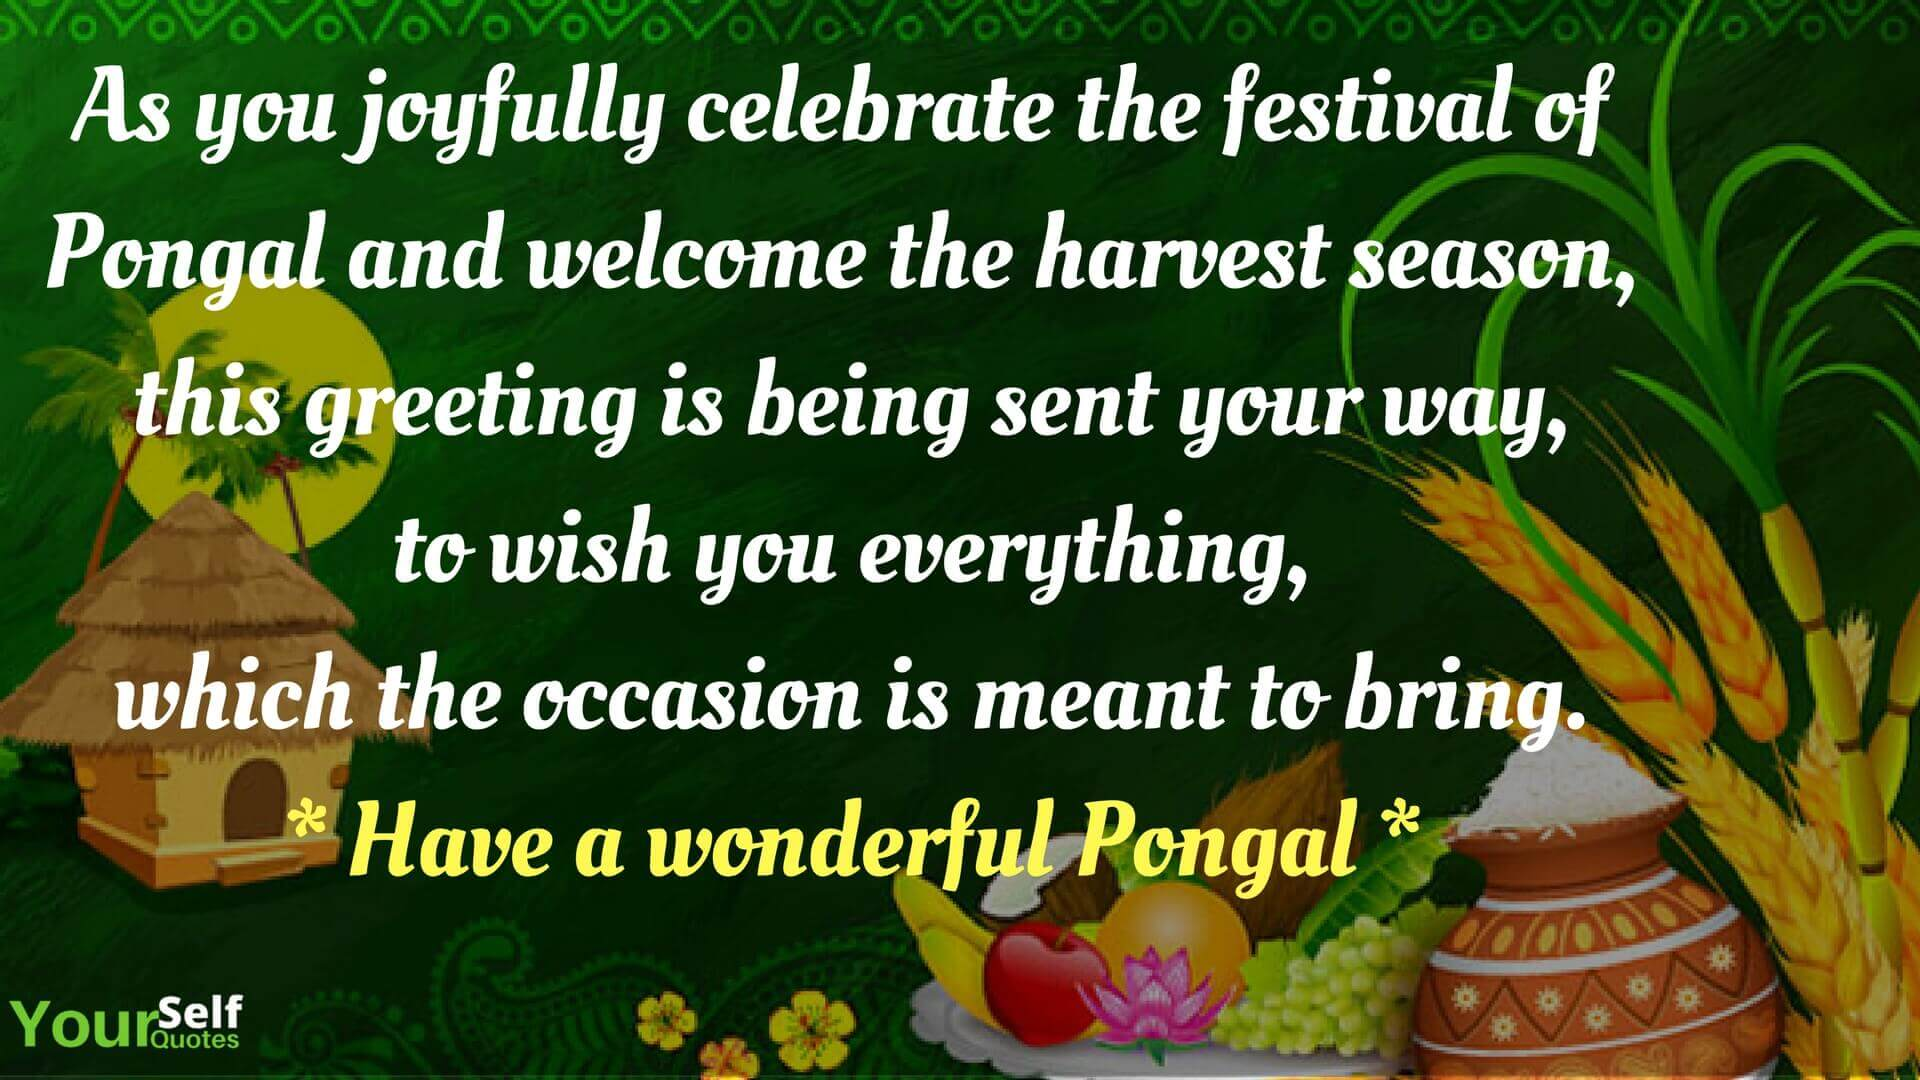 Happy pongal festival wishes 2018 messages greetings images happy pongal festival wishes photo kristyandbryce Images